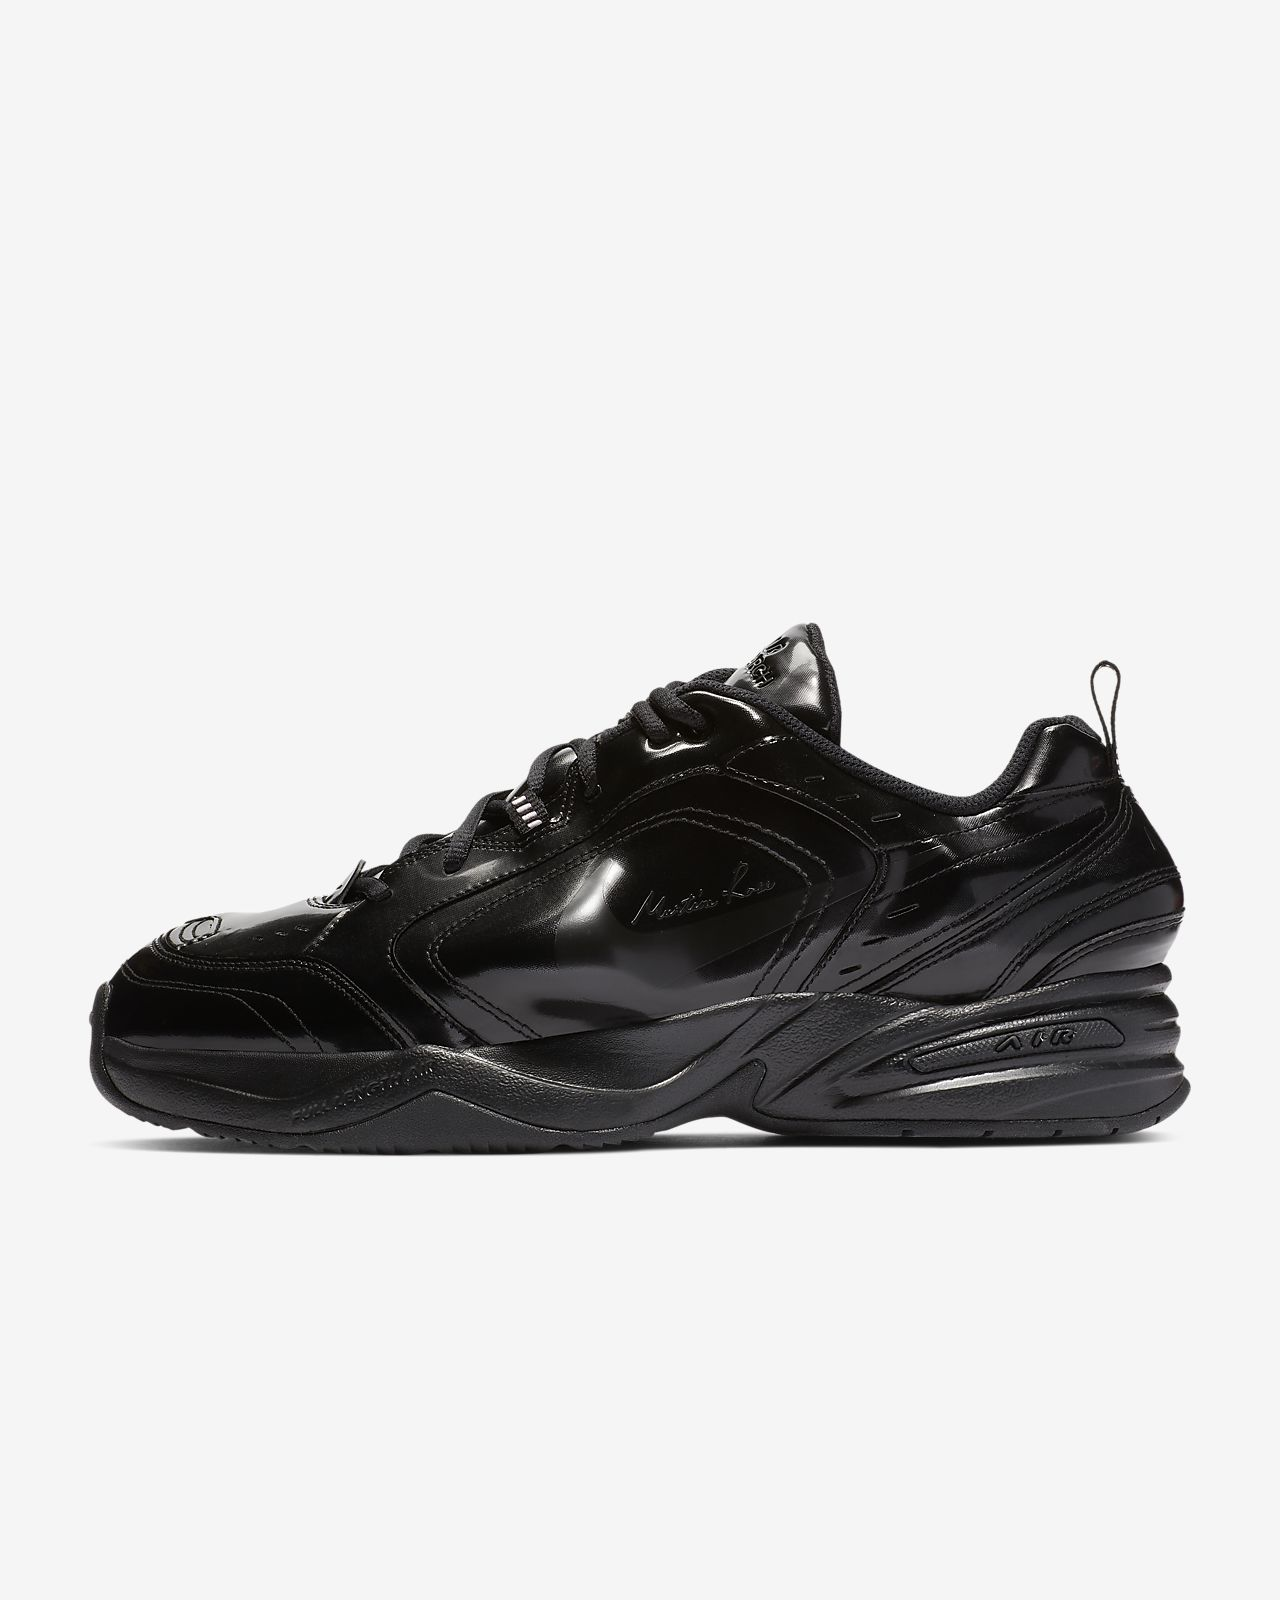 Nike x Martine Rose Air Monarch IV Shoe